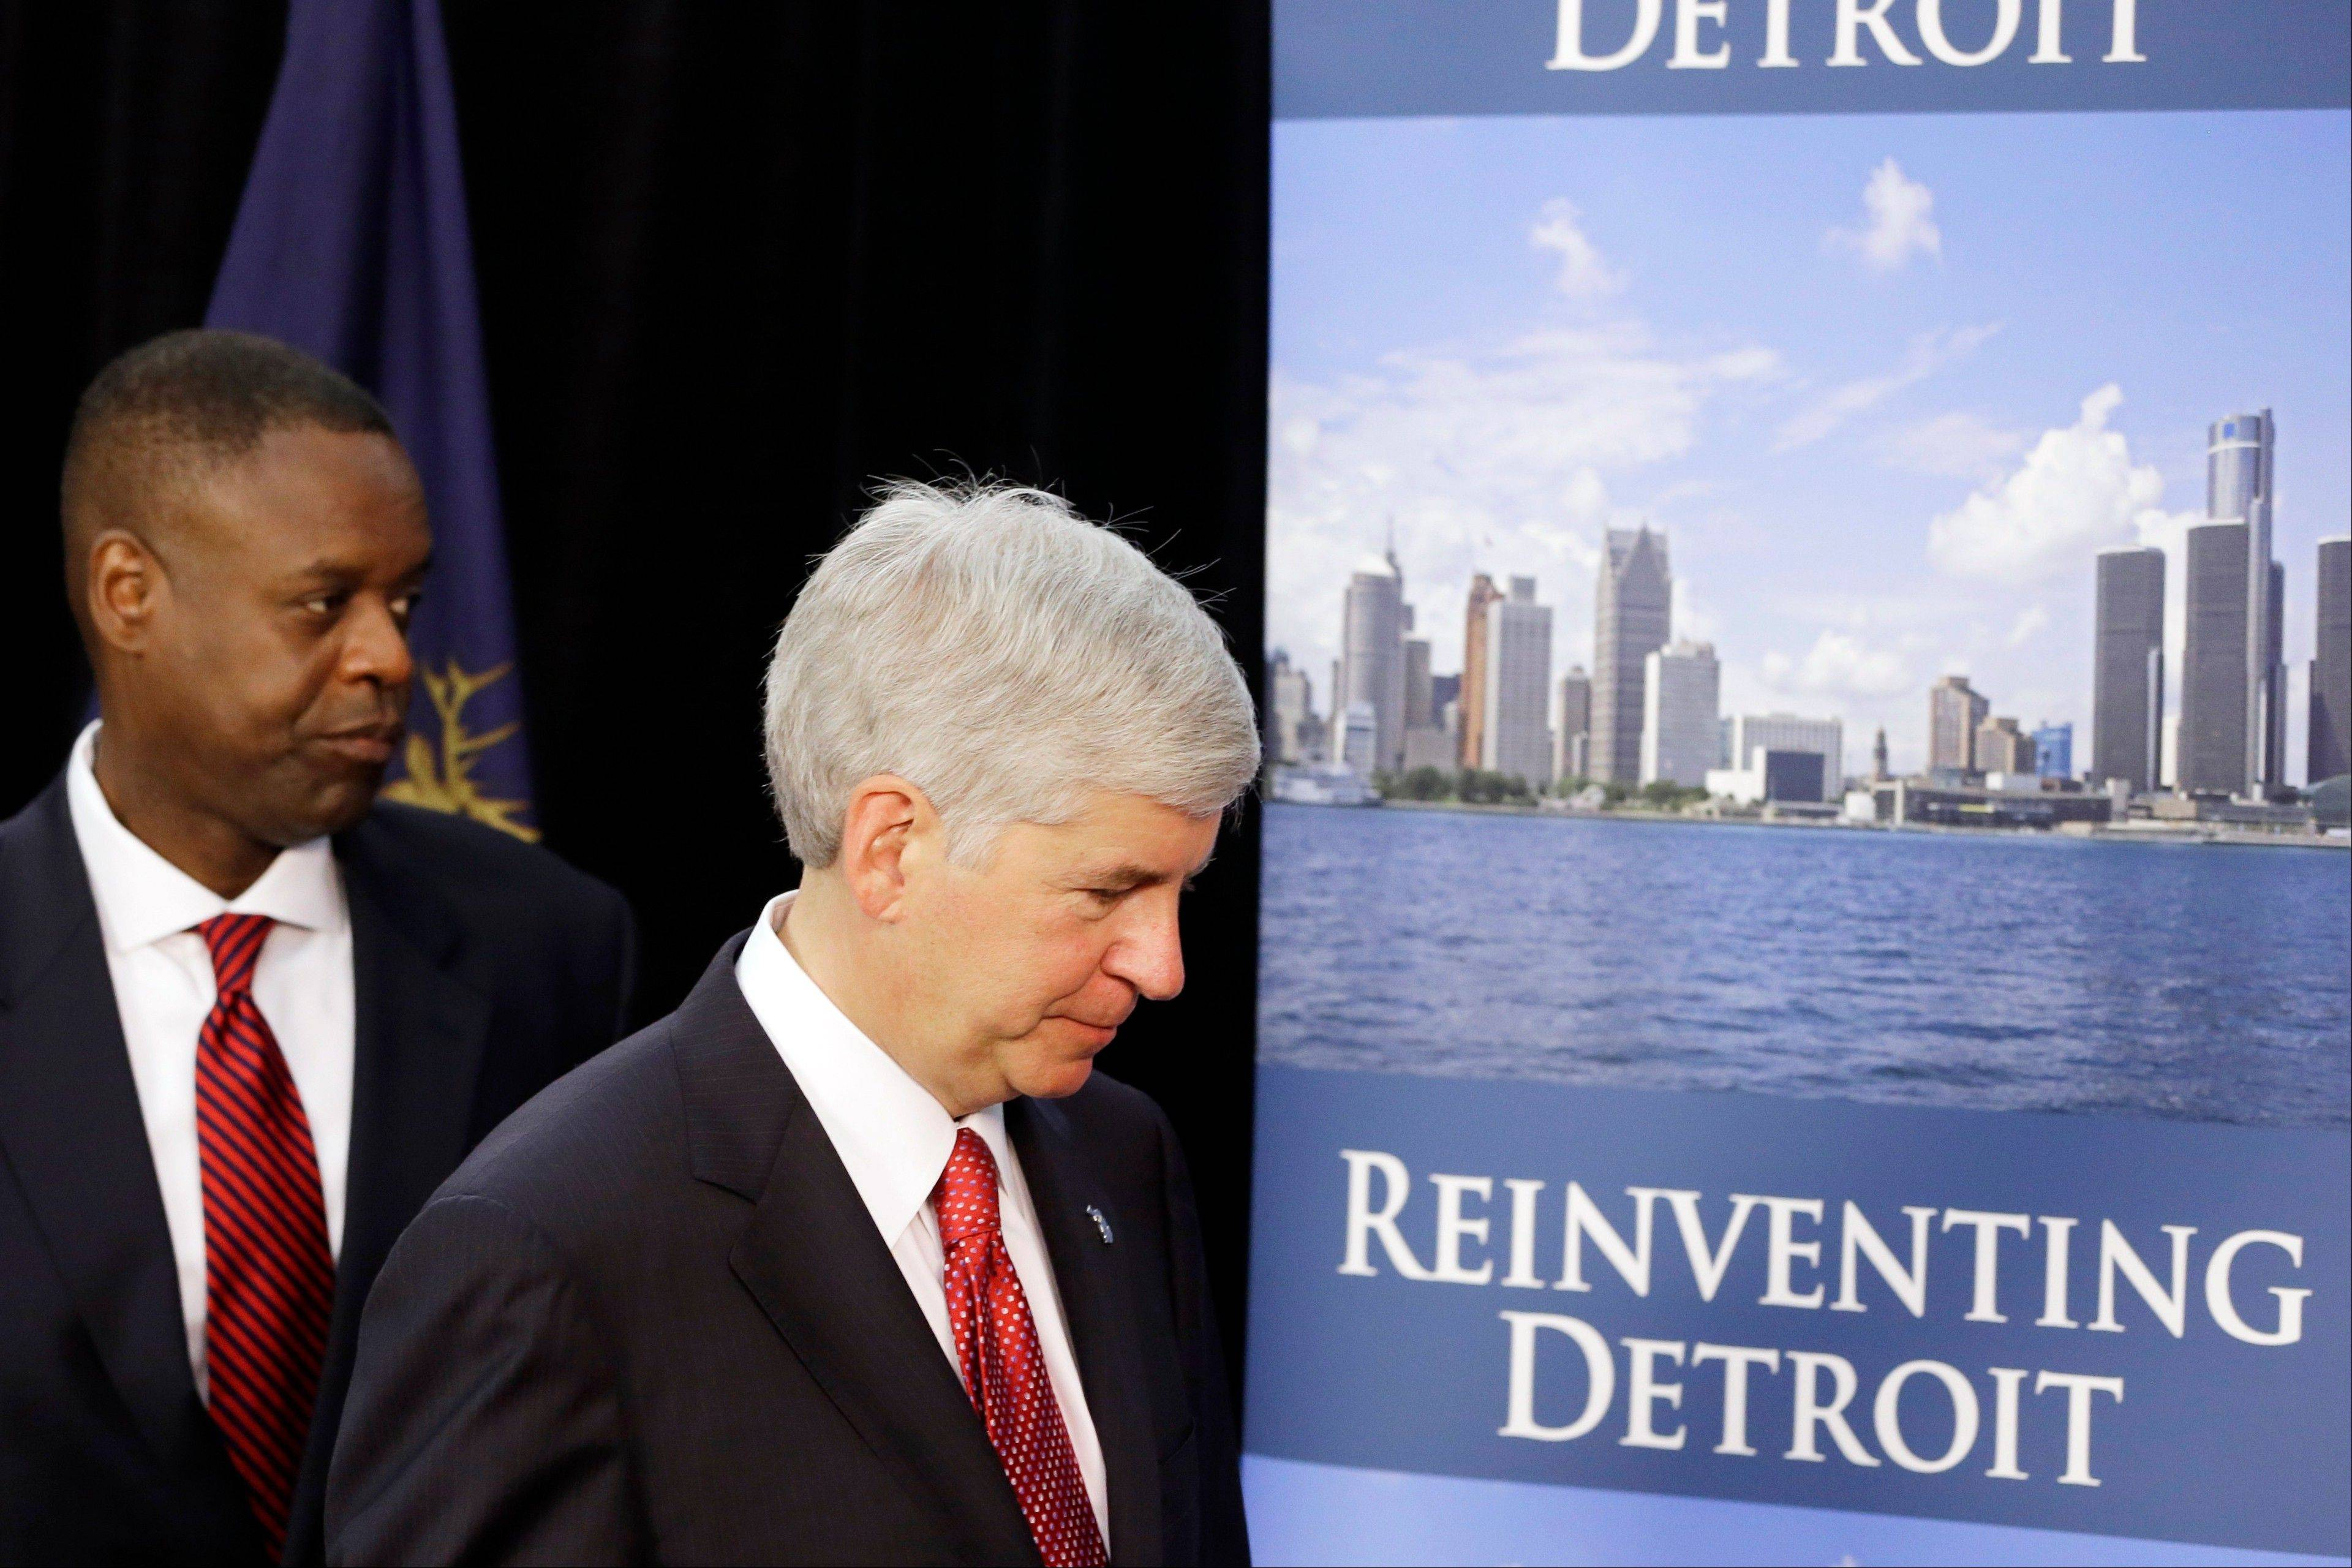 Michigan Gov. Rick Snyder, right, and state-appointed emergency manager Kevyn Orr leave a news conference in Detroit Friday after addressing the city�s bankruptcy.